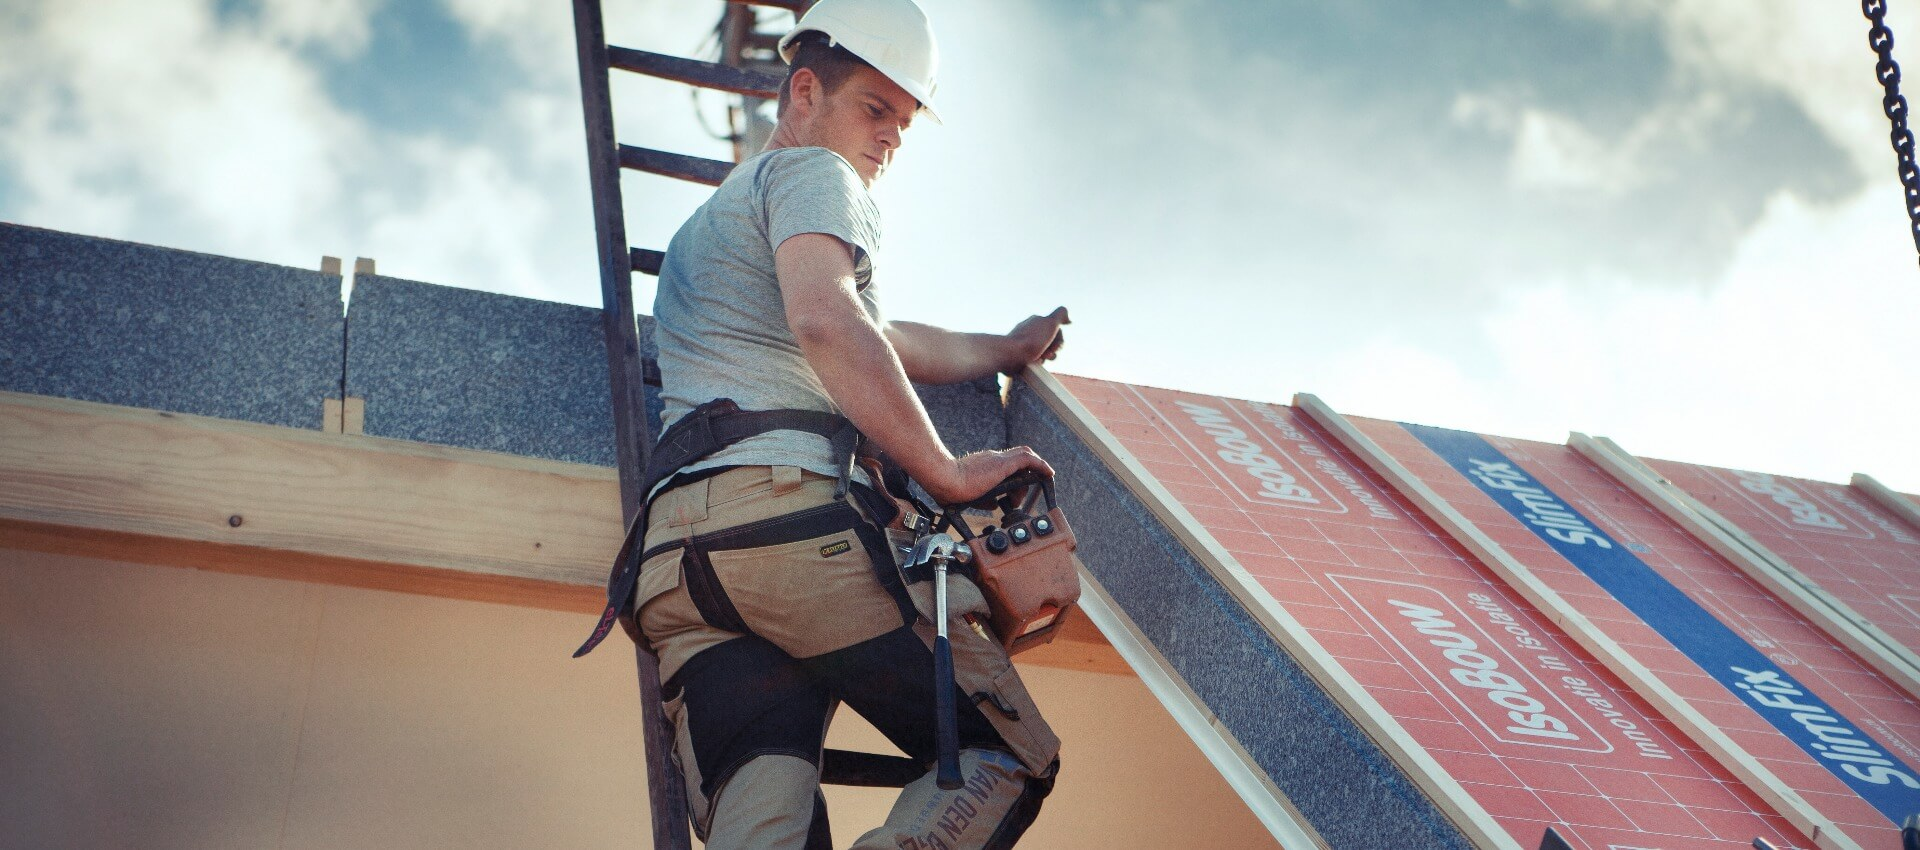 insulation for pitched roof